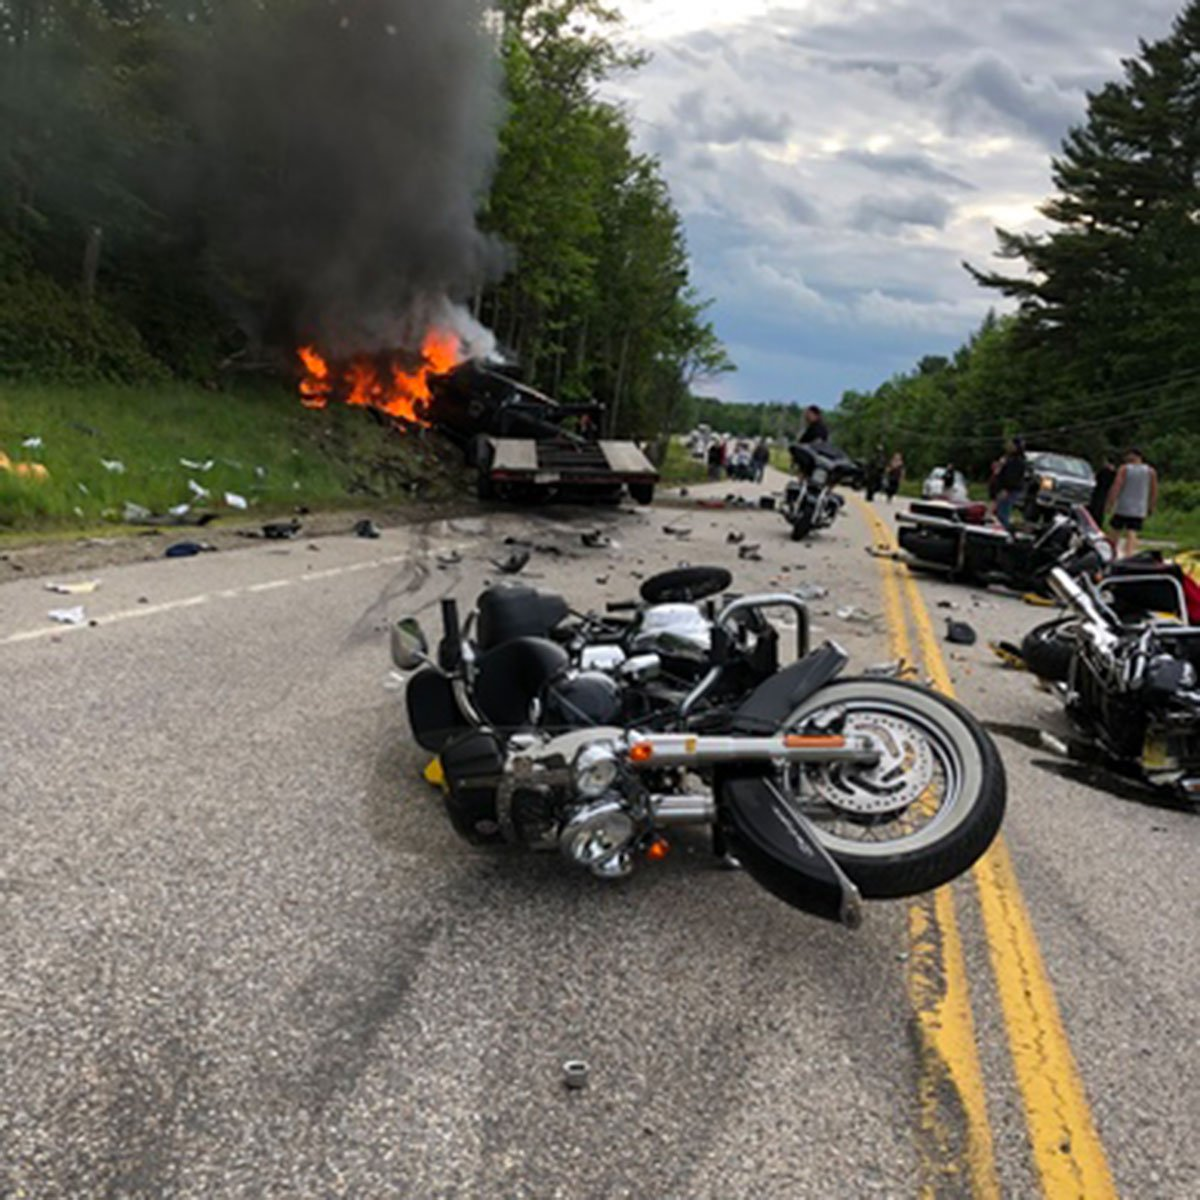 7 bikers dead in crash